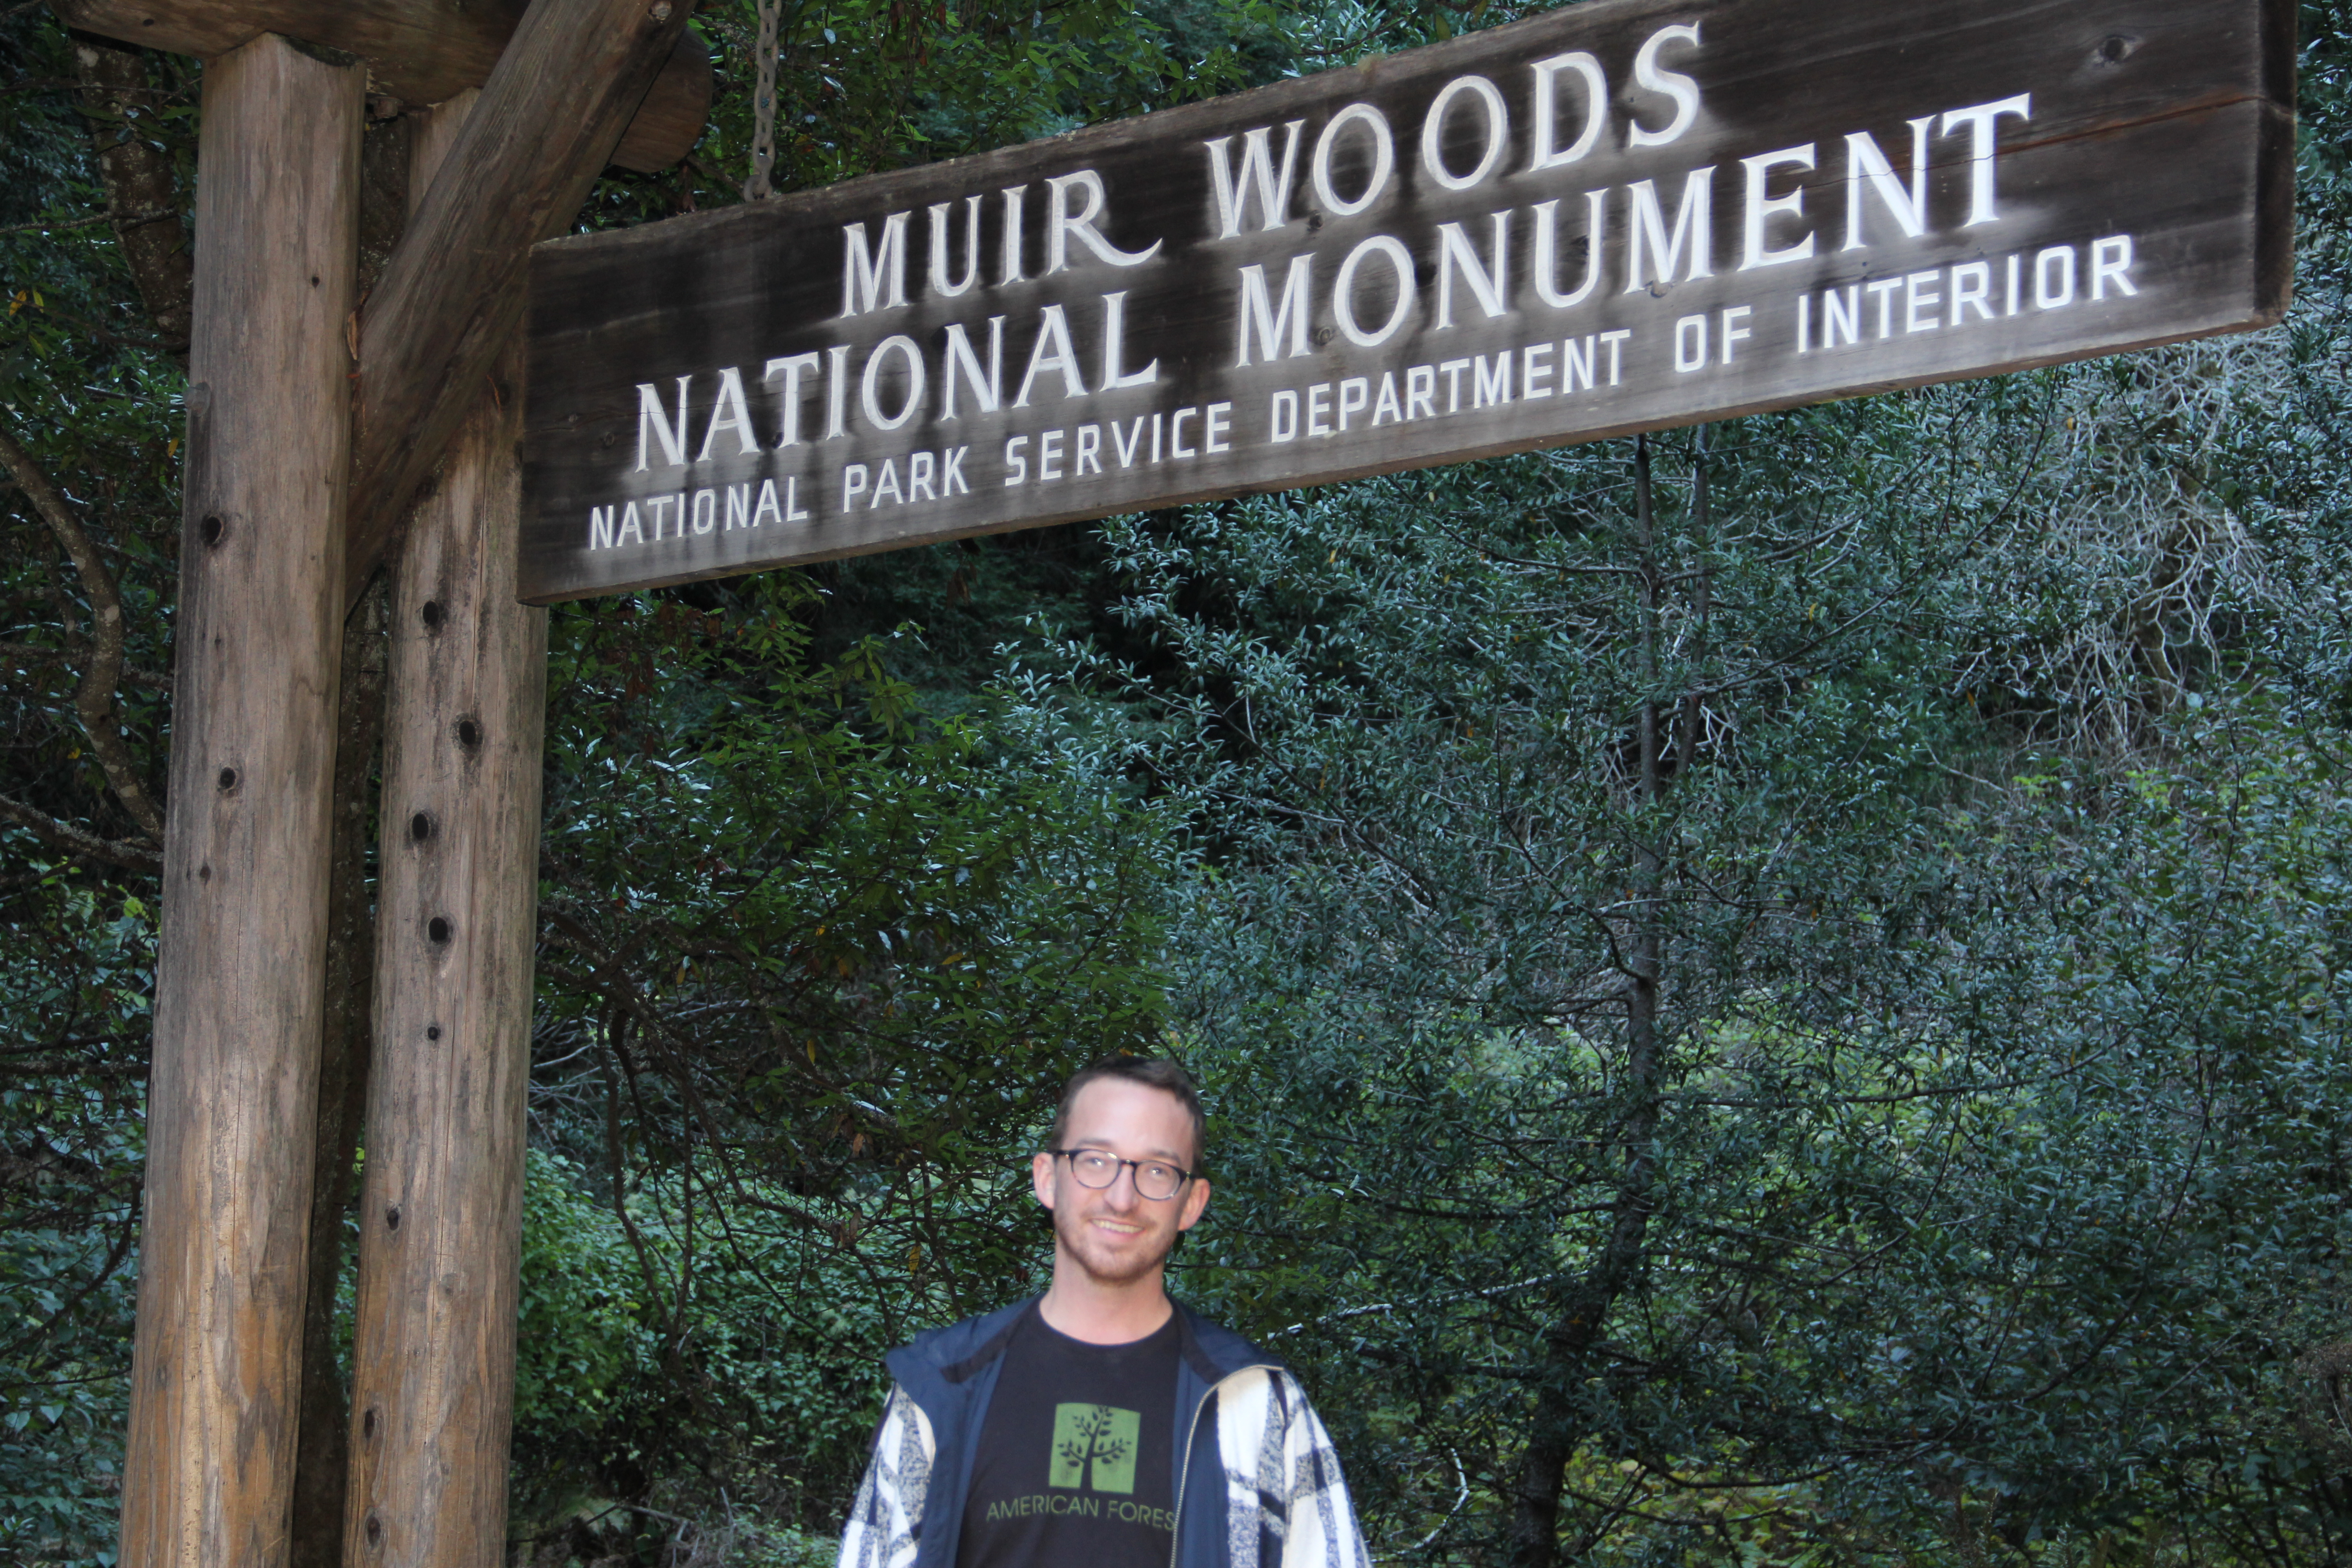 Christopher Horn at entrance to Muir Woods National Monument.